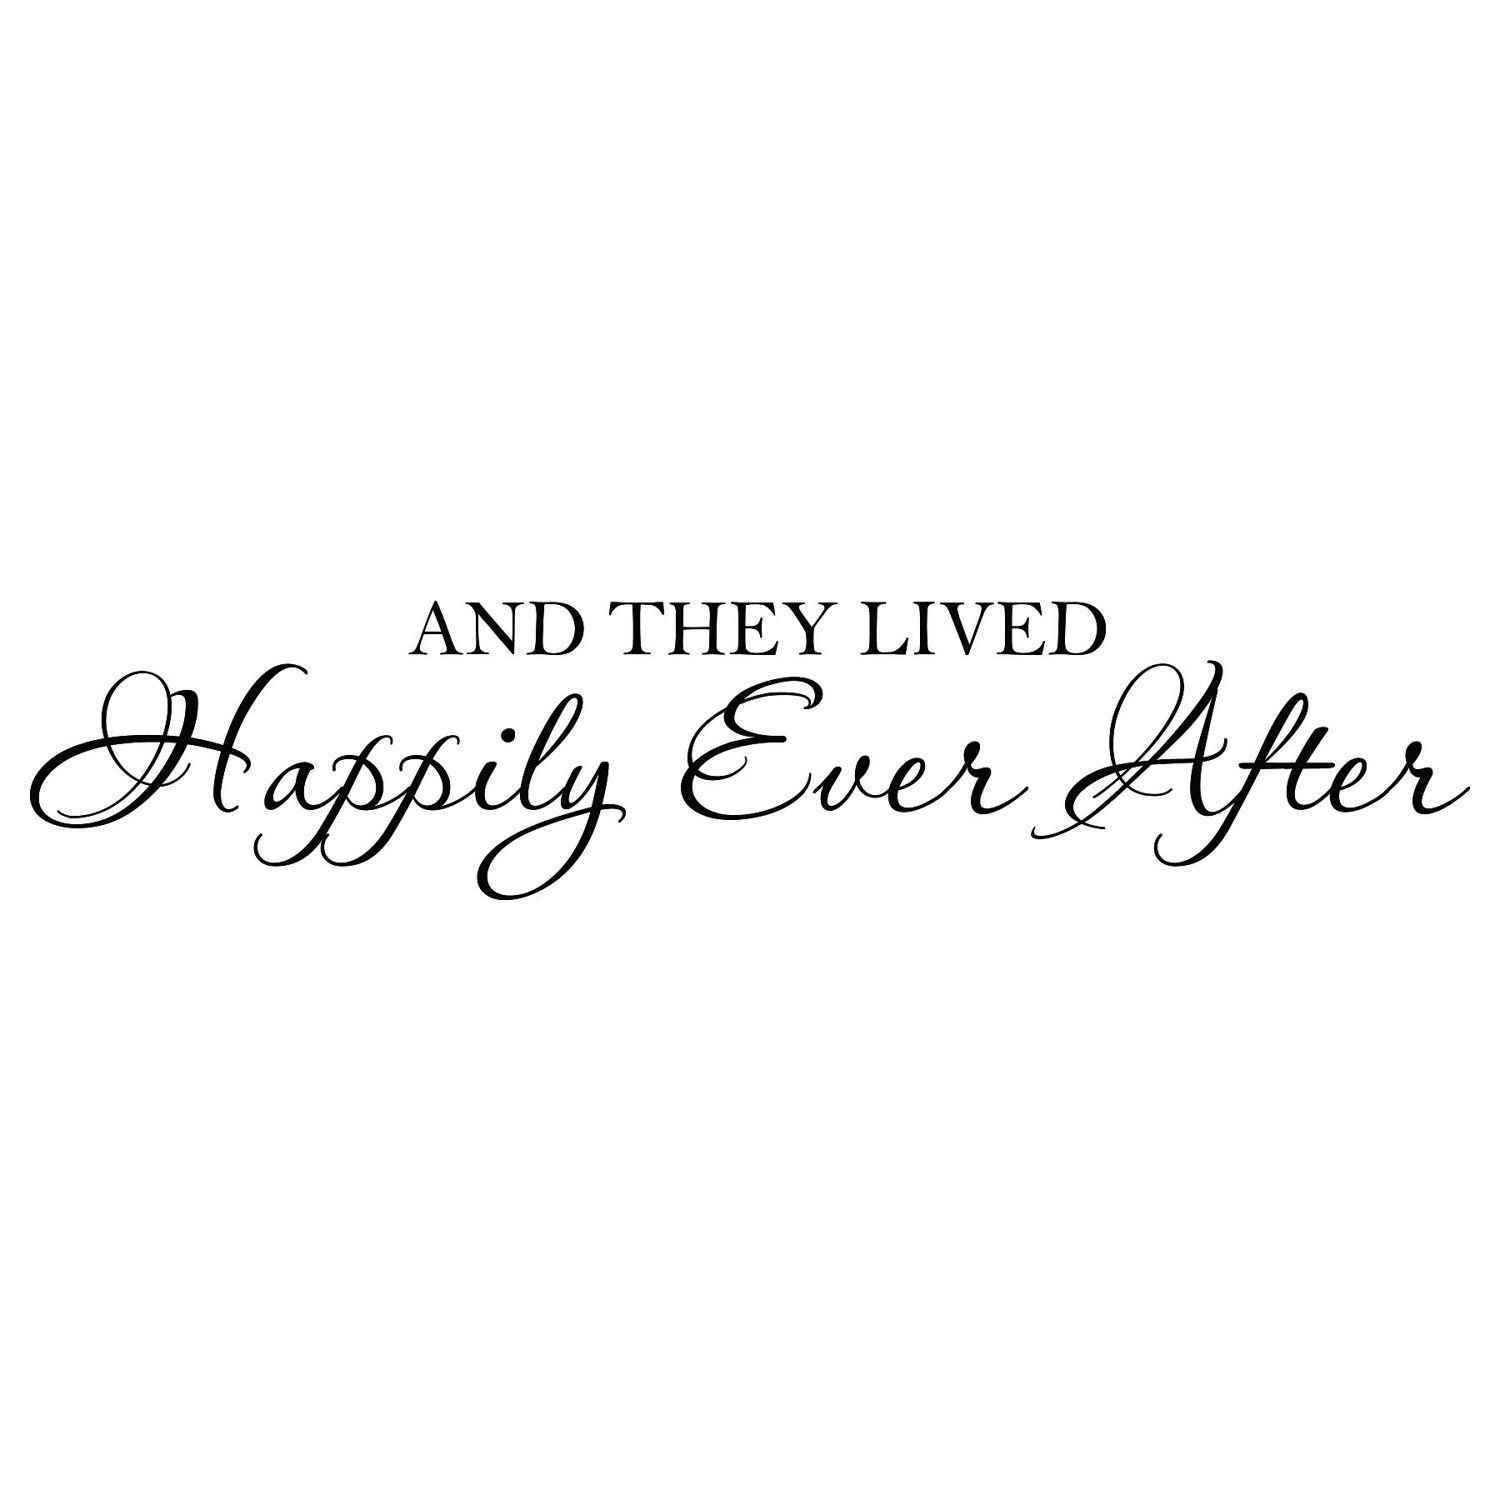 Romantic Bedroom Quotes Romantic Wall Decal Bedroom Quote Vinyl Lettering Decor And They Lived Happily Ever After Wall Art Lo003 Romantic Wall Decals Romantic Bedroom Quotes Happily Ever After Quotes